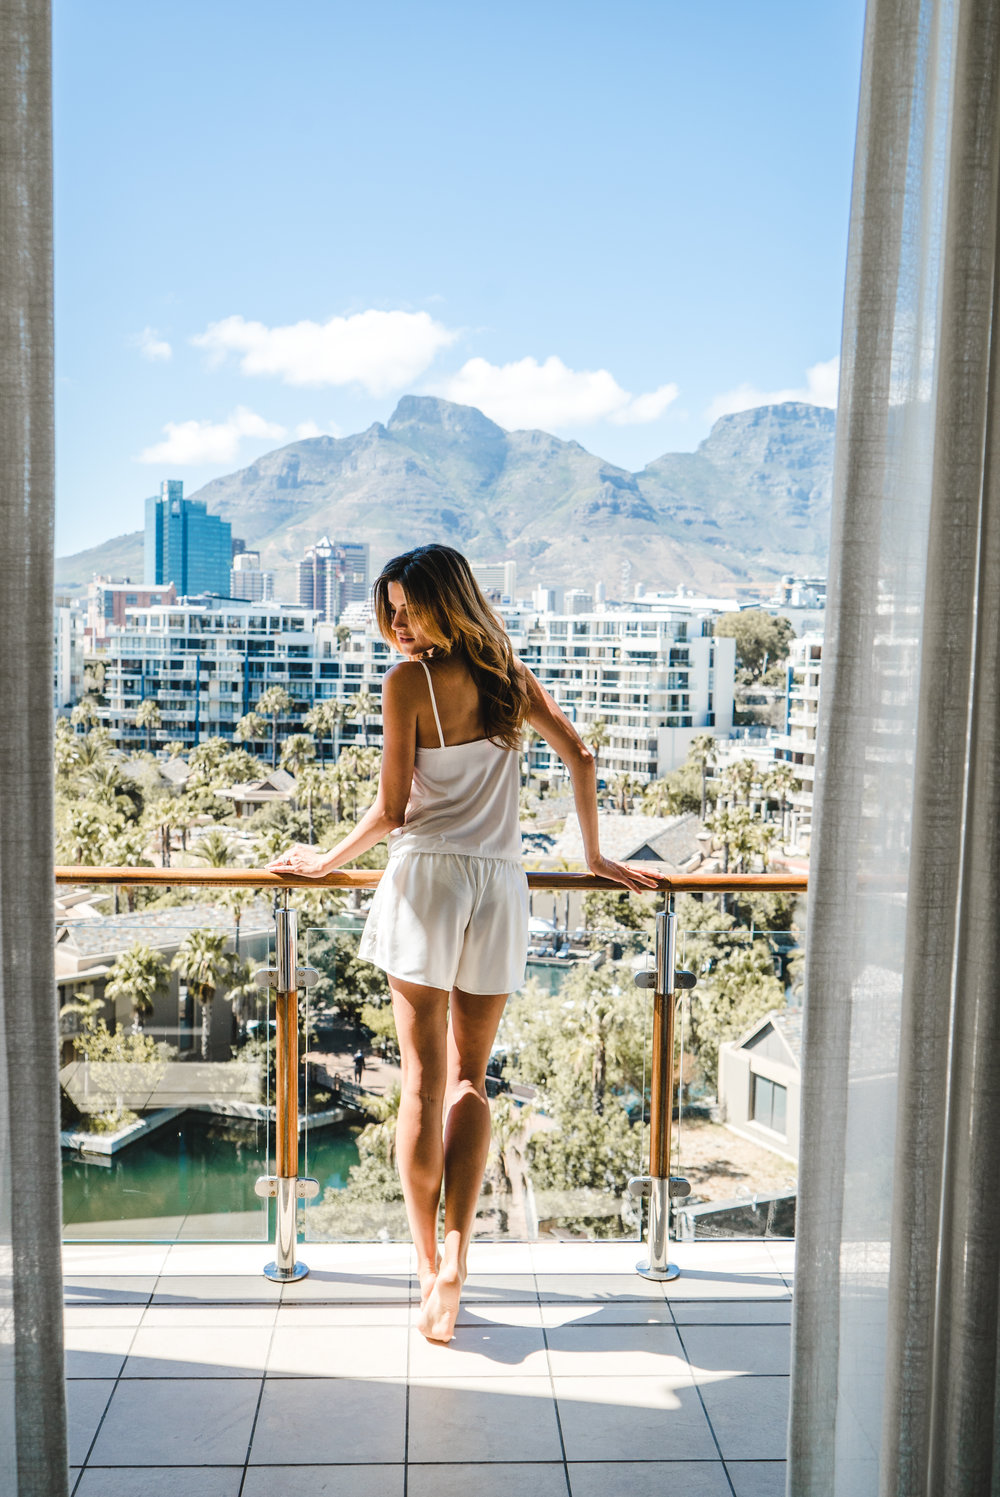 A girl standing on the balcony at One&Only Cape Town enjoying the view of Table Mountain in the morning